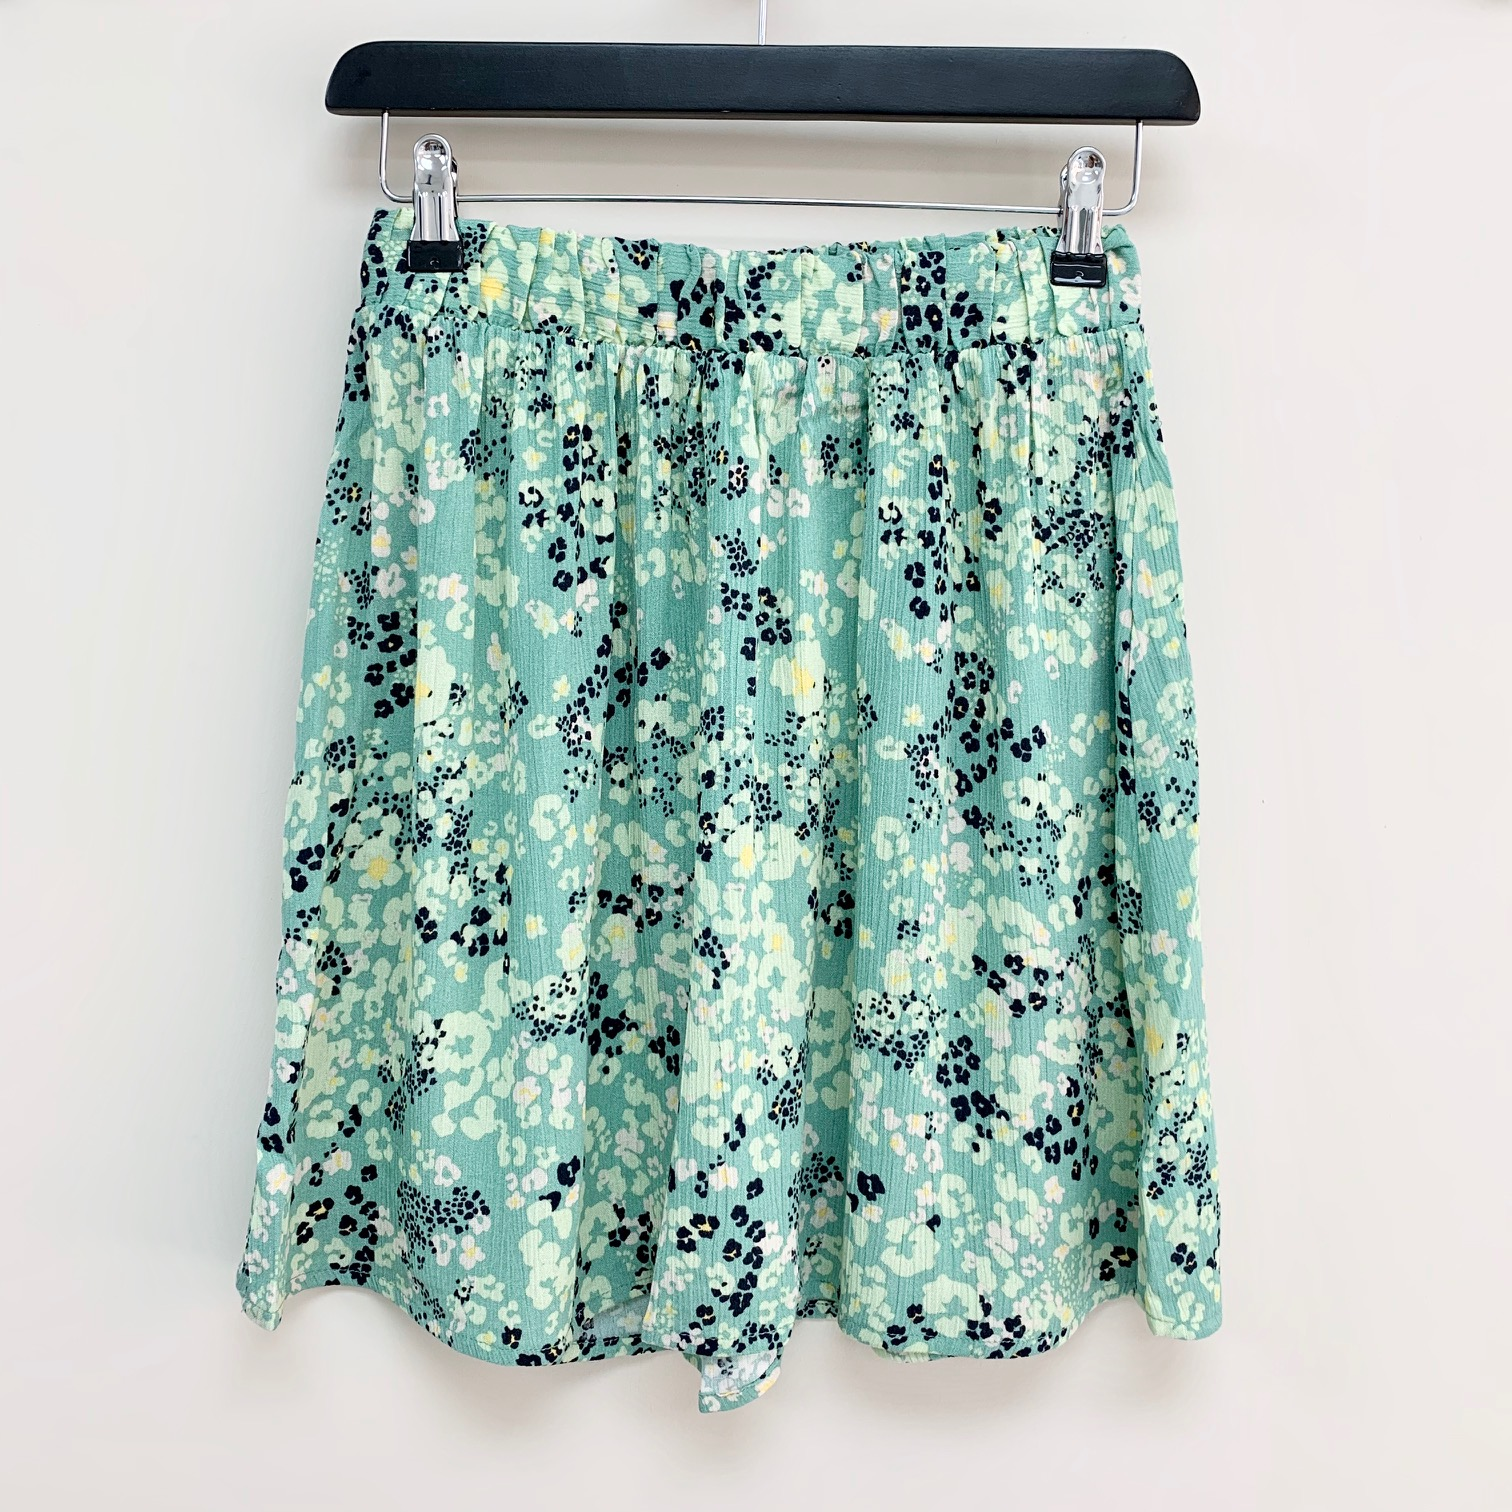 SALE Marrakech skirt